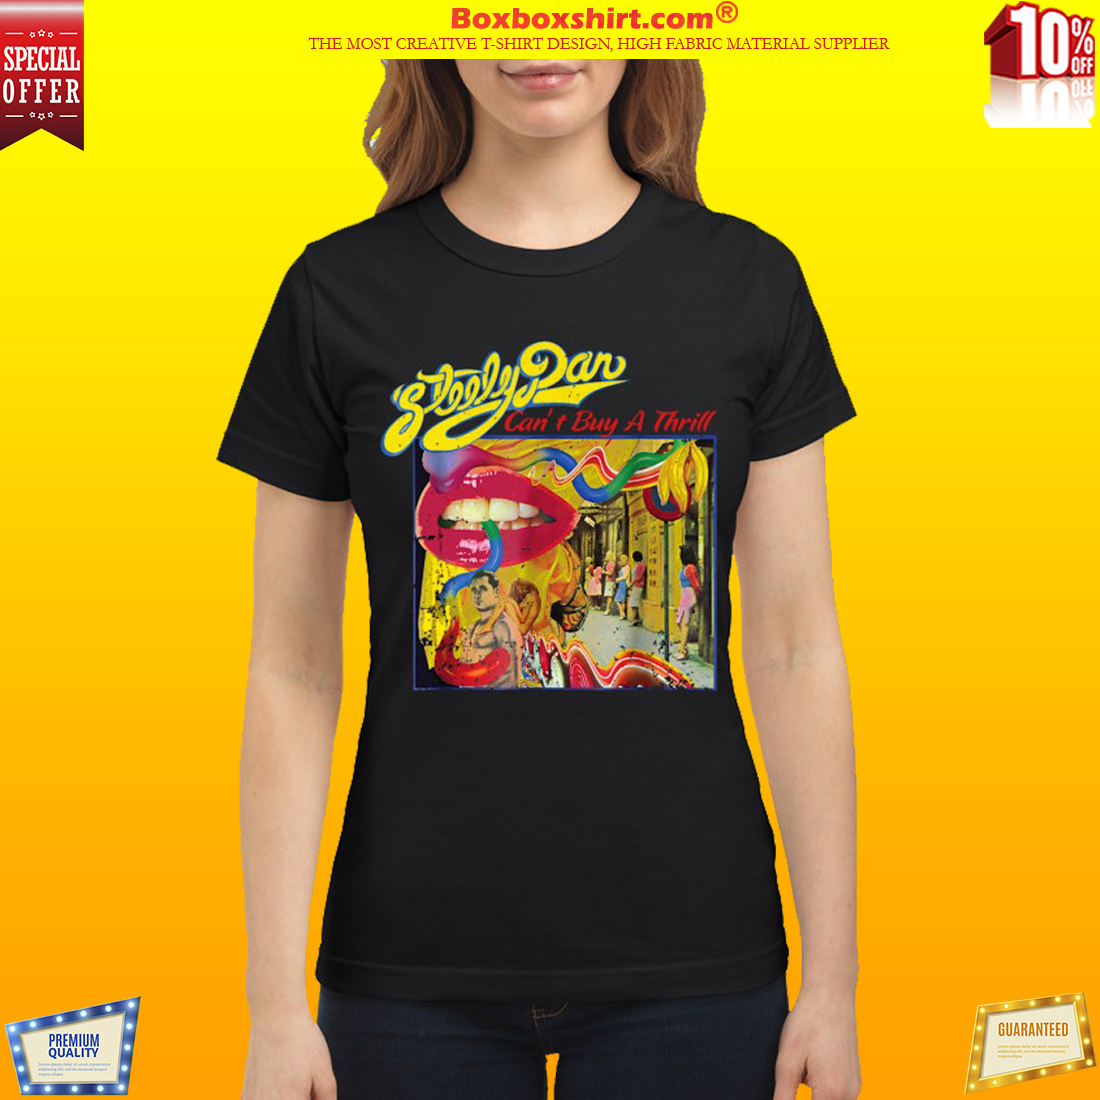 Steely Dan I can't buy a thrill classic shirt